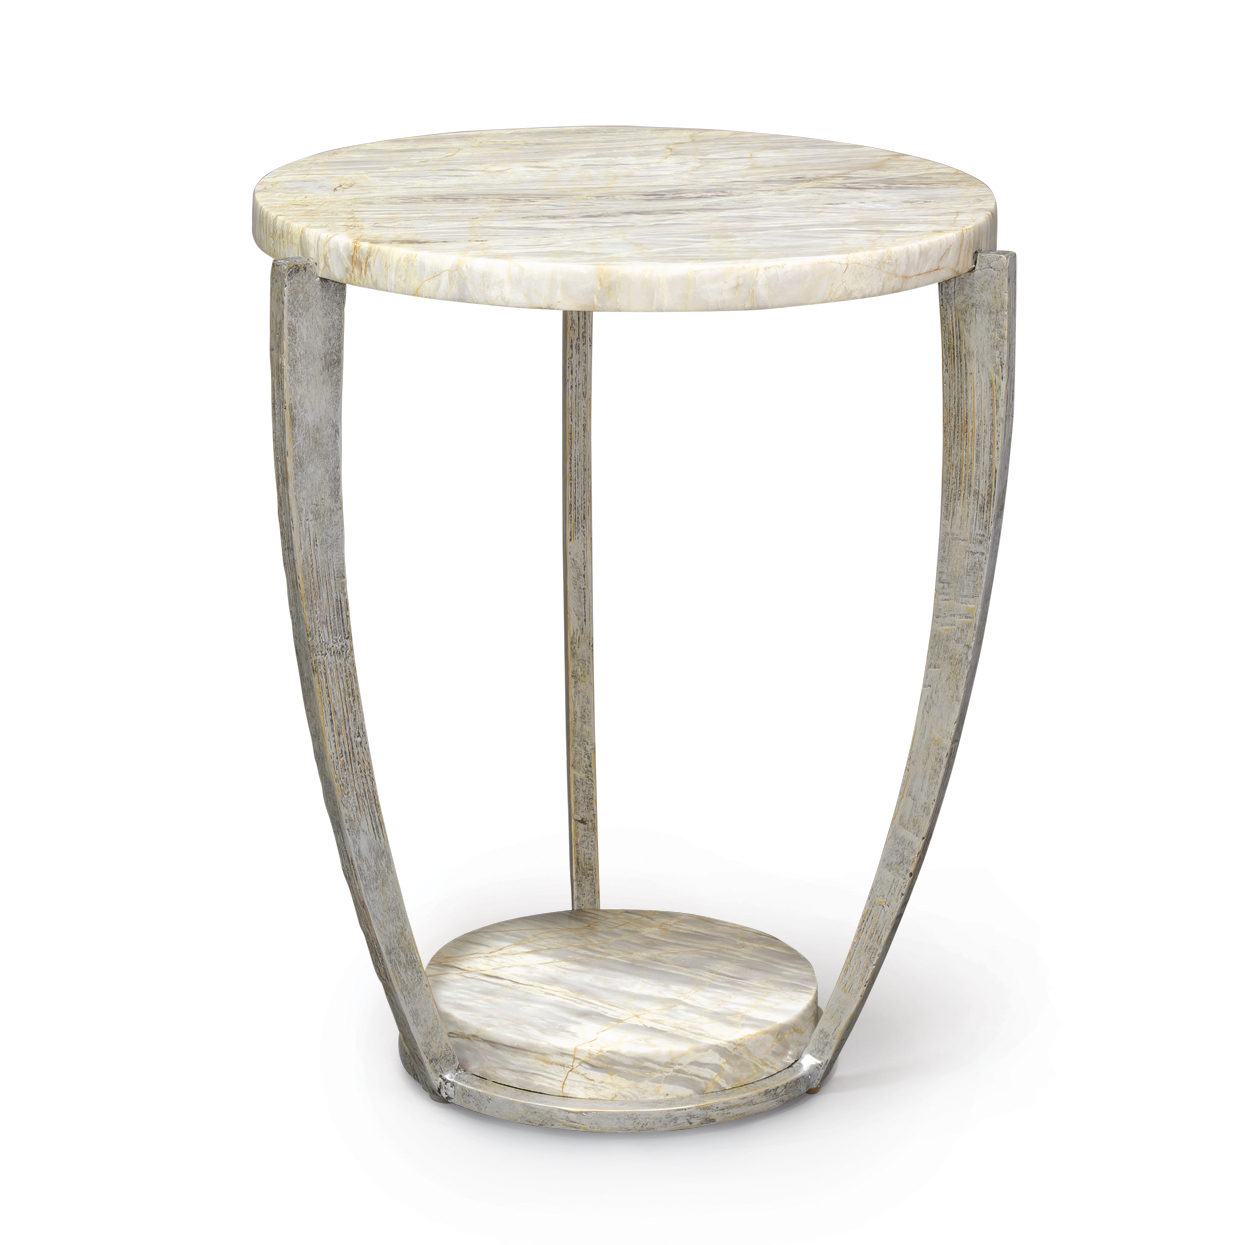 exciting marble accent table set bistro threshold top wood round small antique and faux killian target metal black white nero full size bronze glass side coffee safavieh treasures